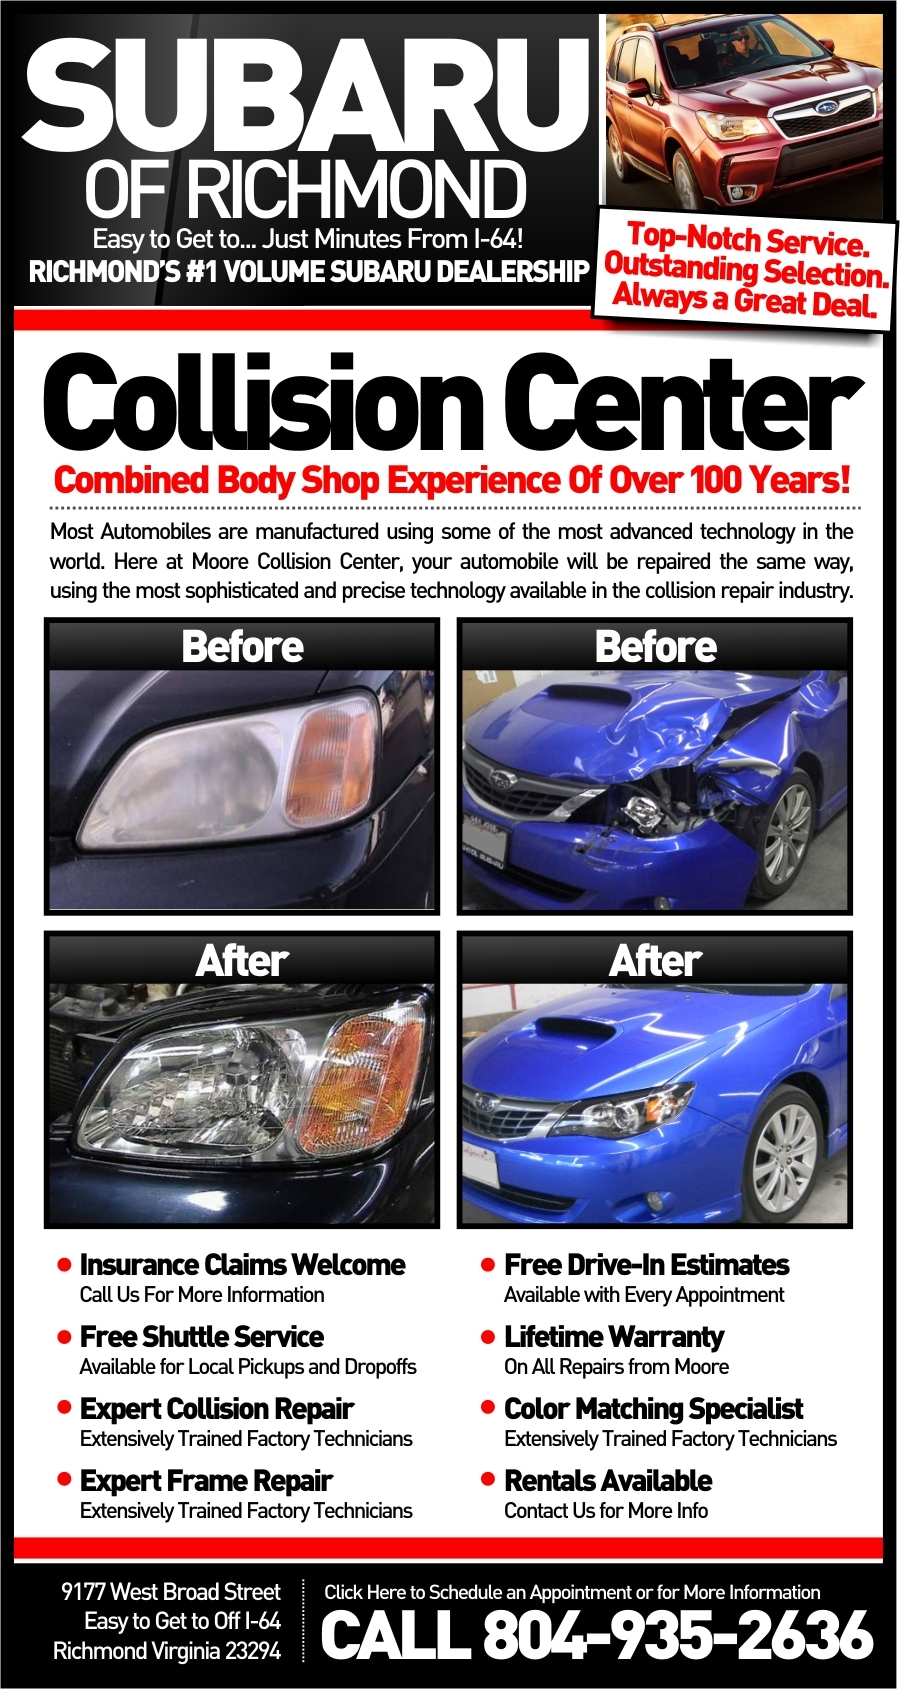 Car Body Repair Shops Near Me >> Collision Center At Richmond Subaru Auto Repair Available Near